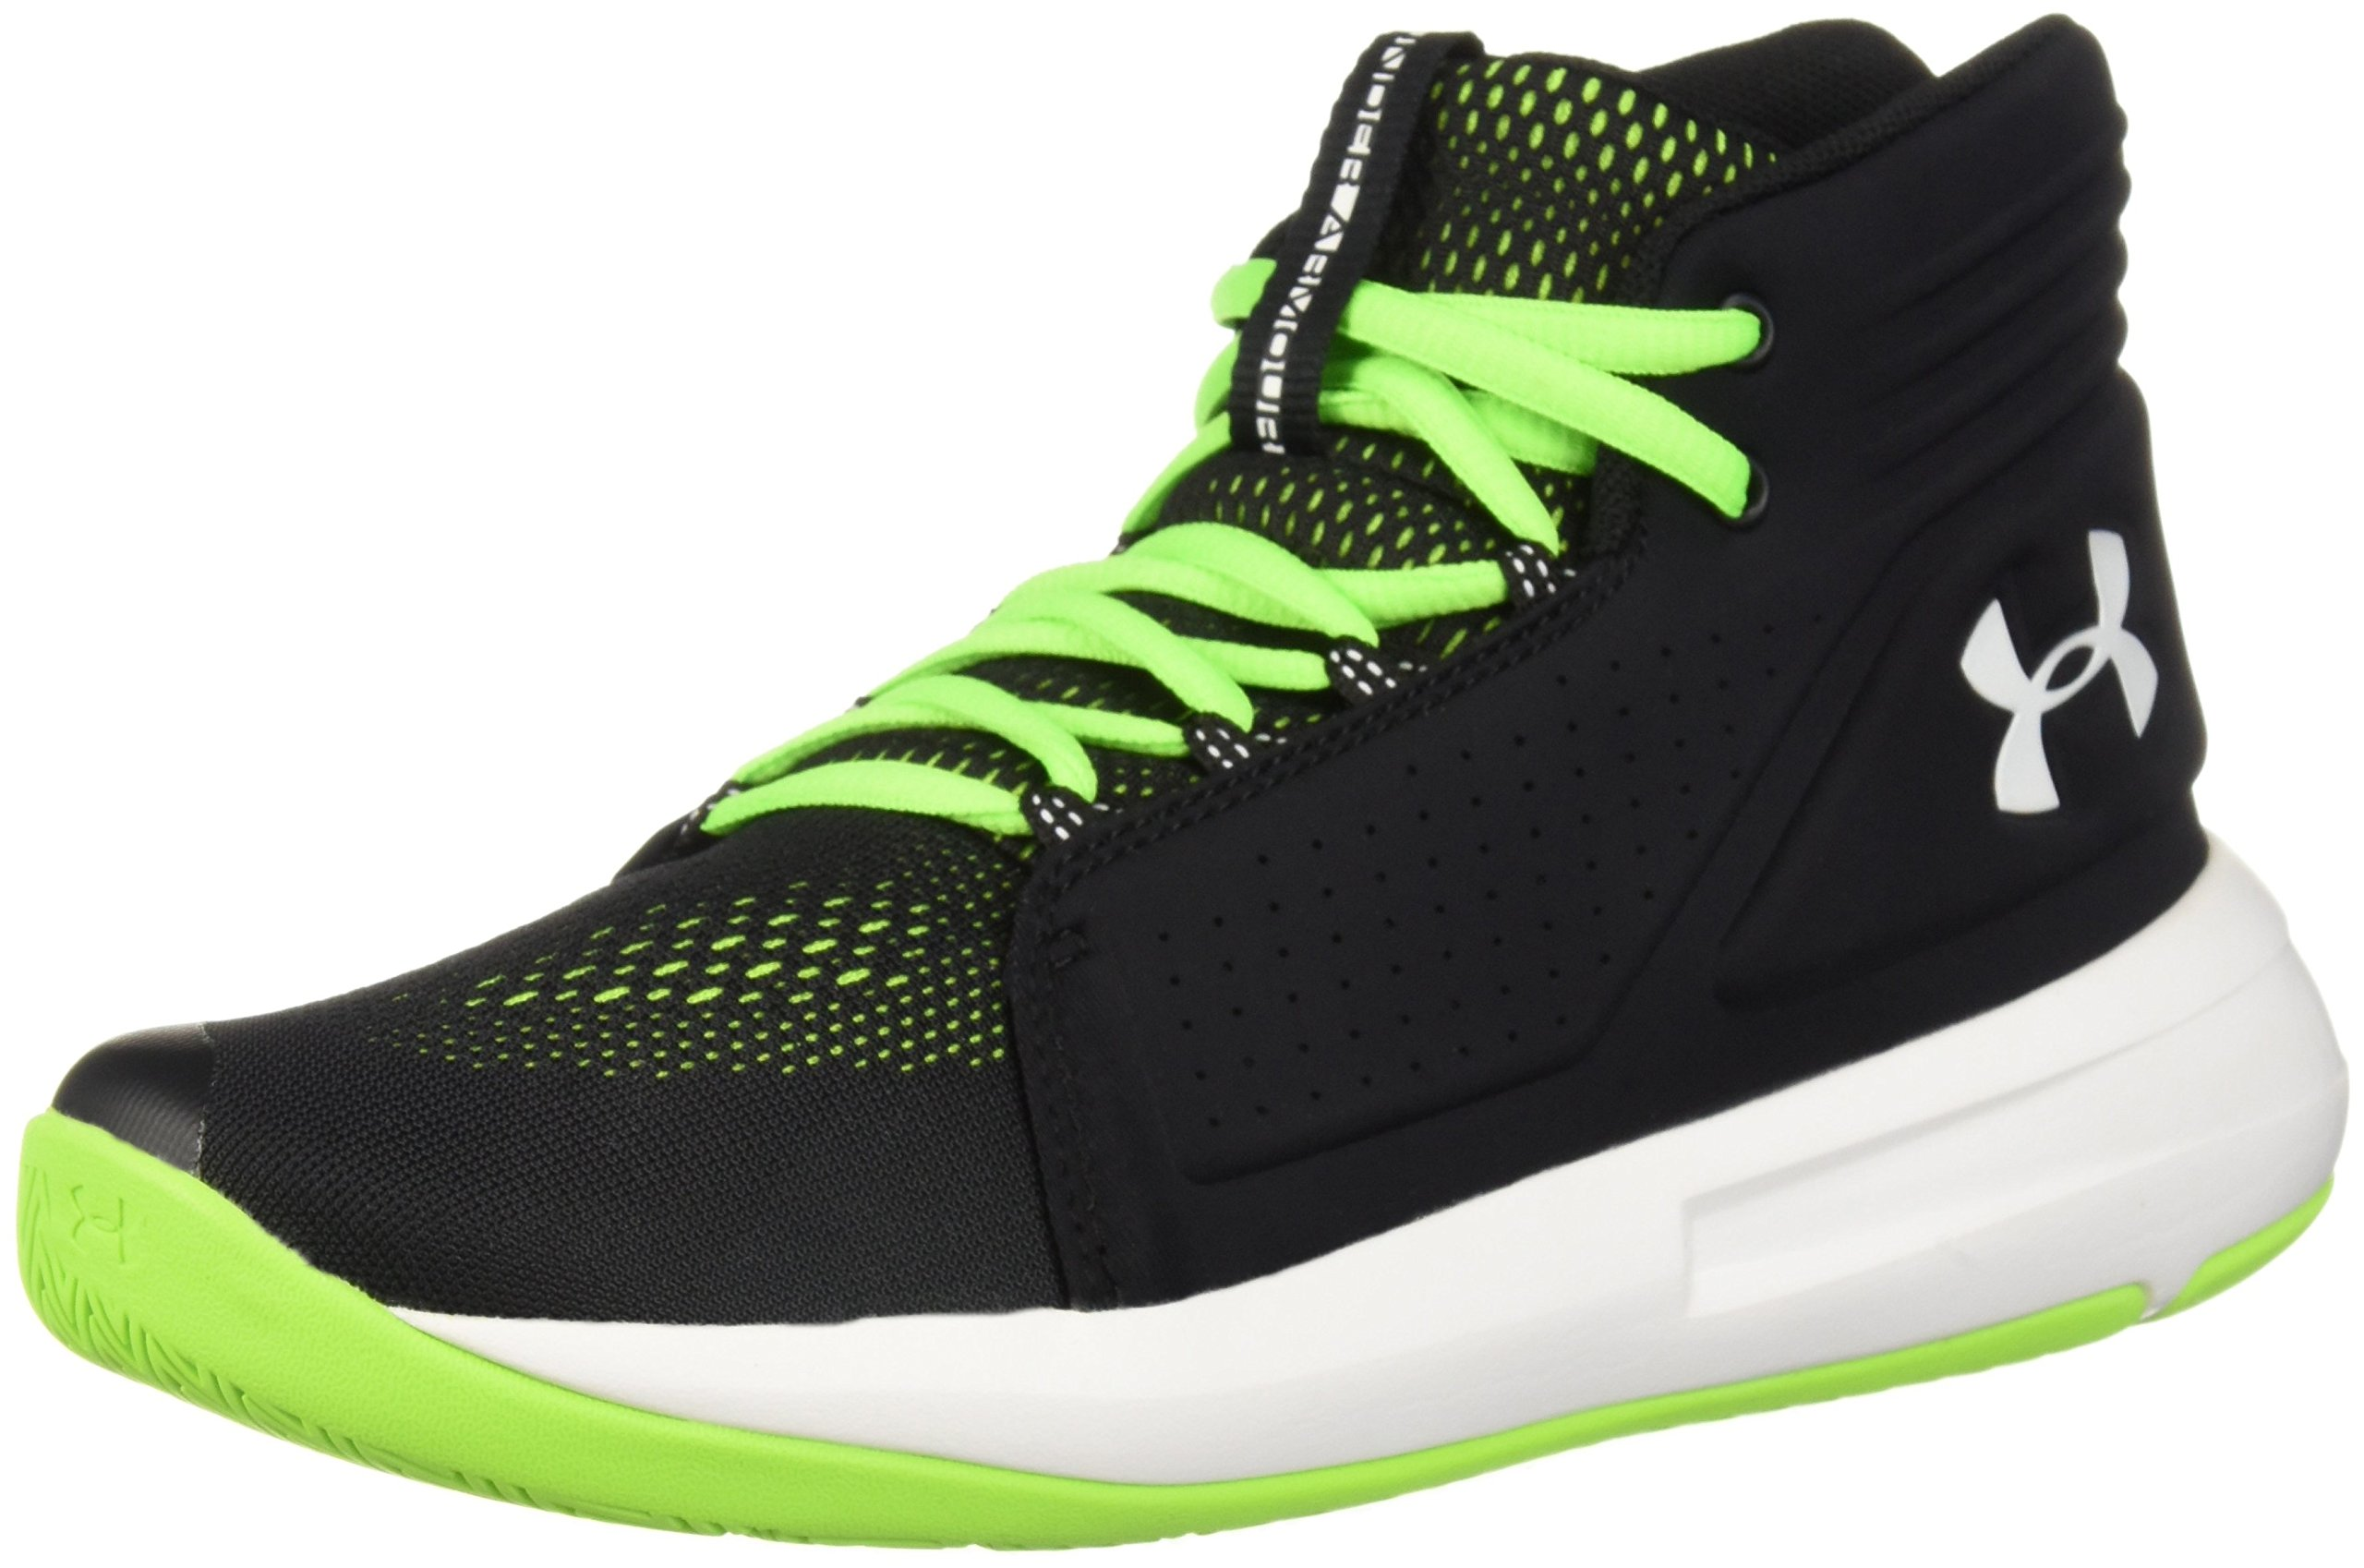 Under Armour Boys' Grade School Torch Mid Basketball Shoe Black (001)/Hyper Green 6